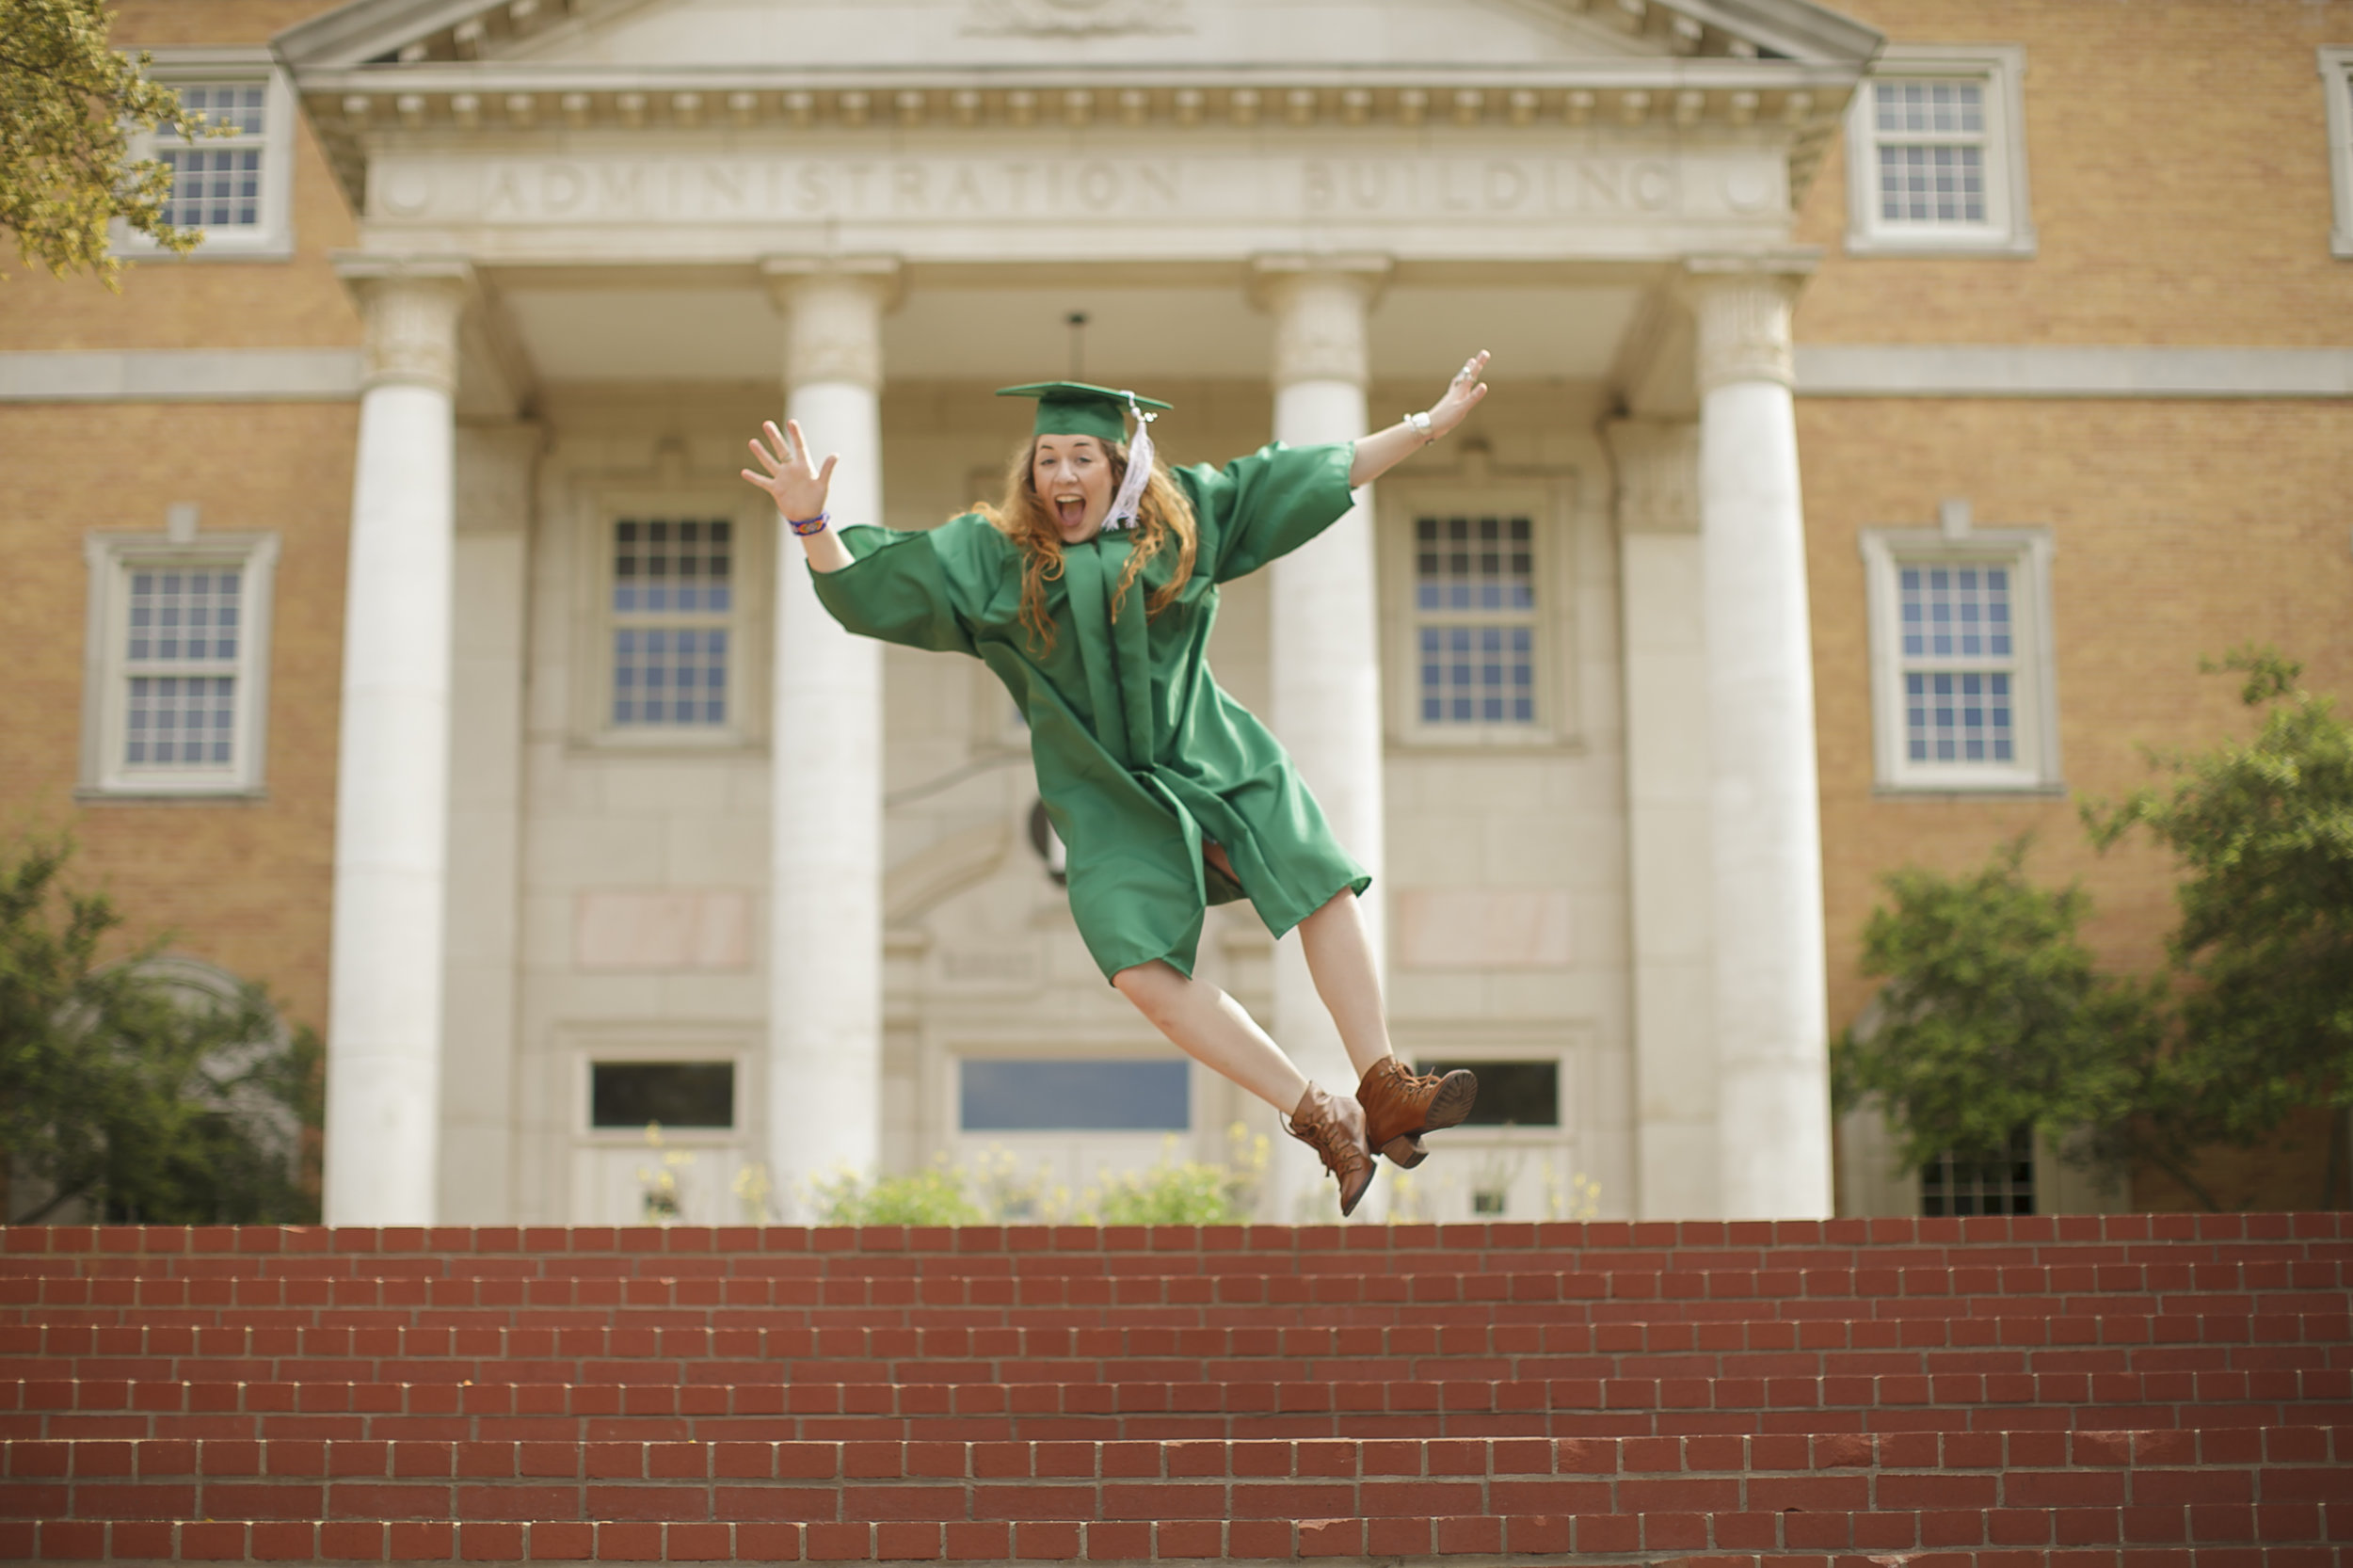 We help with college apps! - MeriEducation has helped over 2,000 students get into college.